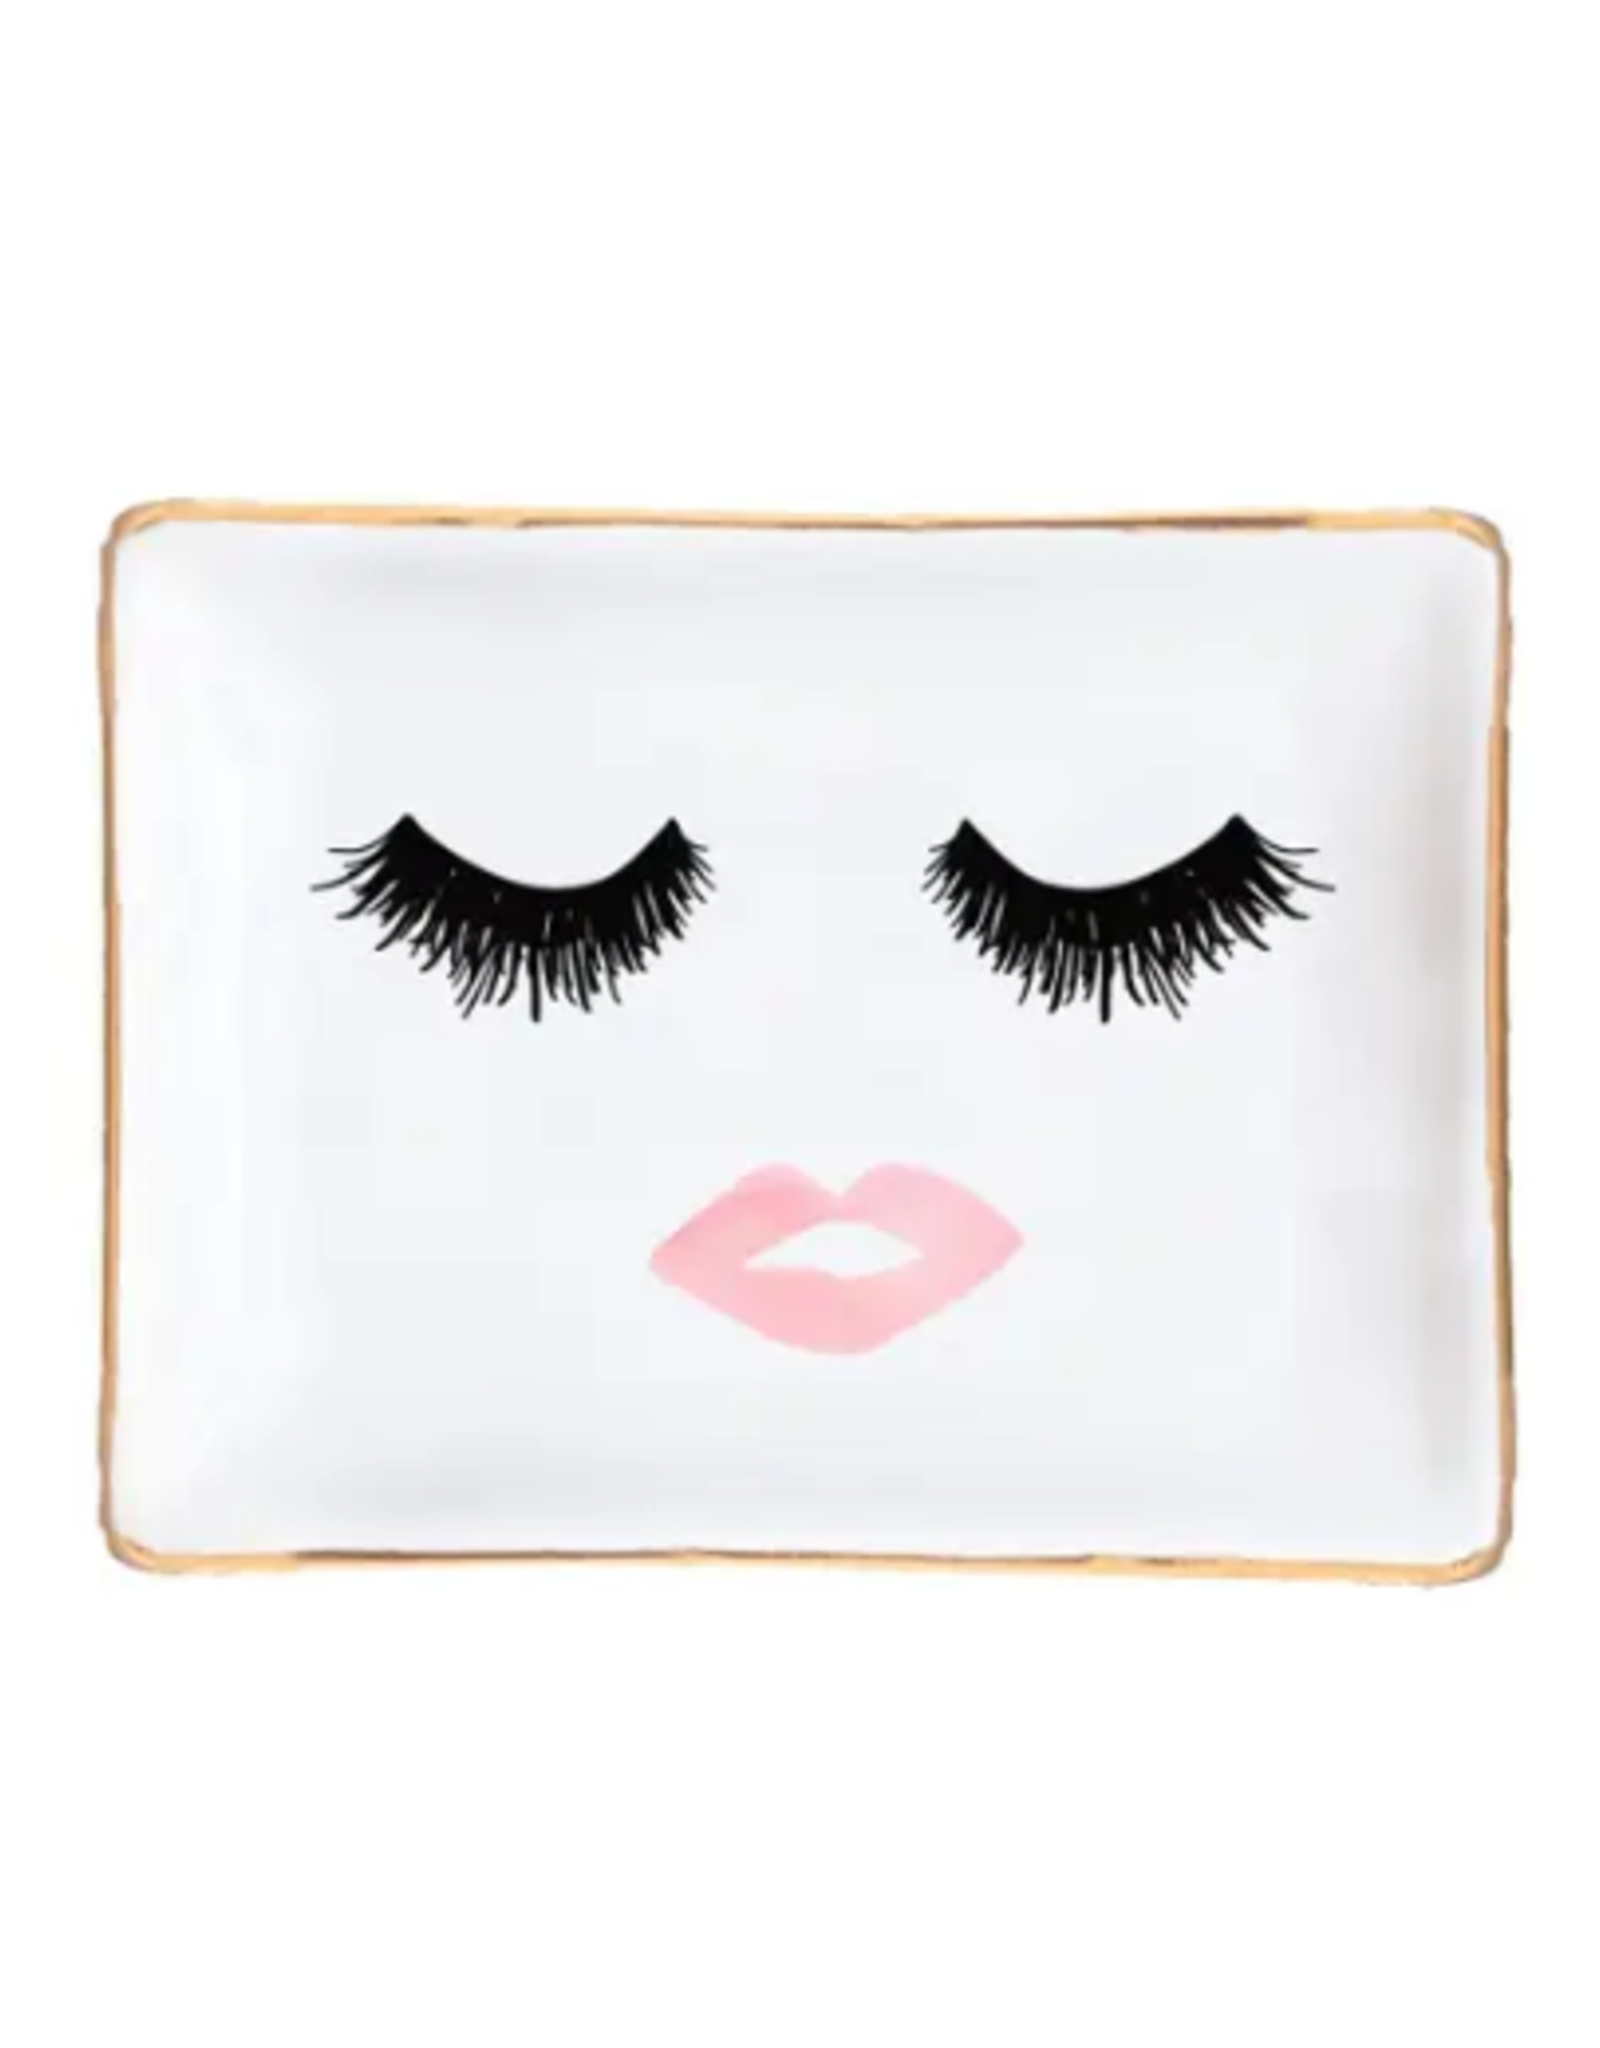 Lashes & Lips Jewelry Dish